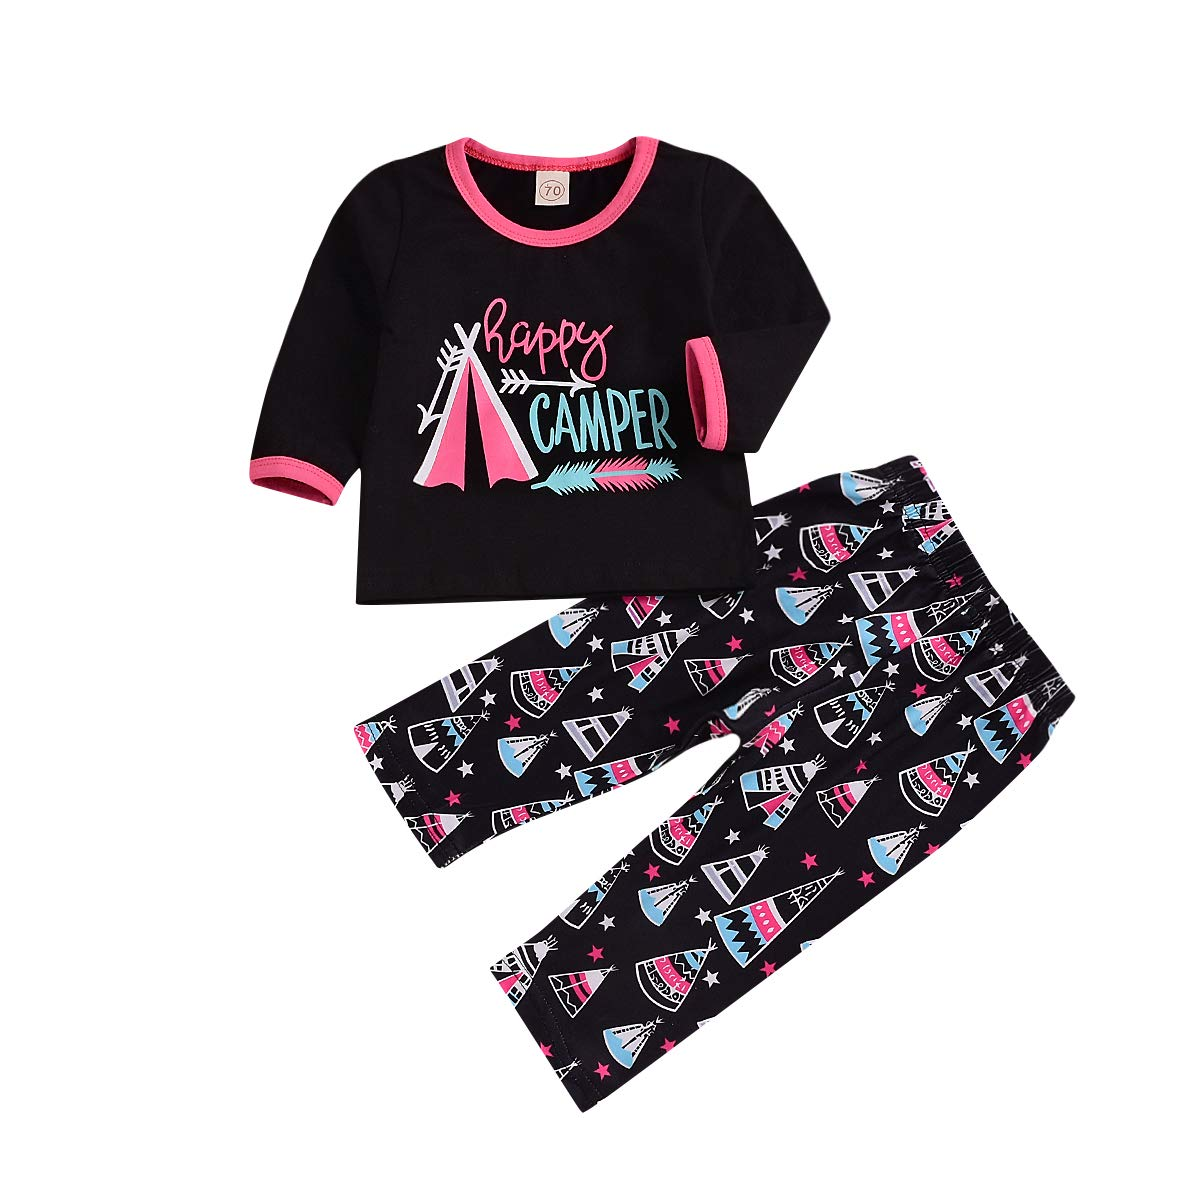 CAIBIET PANTS ユニセックスベビー 0 - 6 Months Kid Happy Camper Outfit B07H2ZBDJL